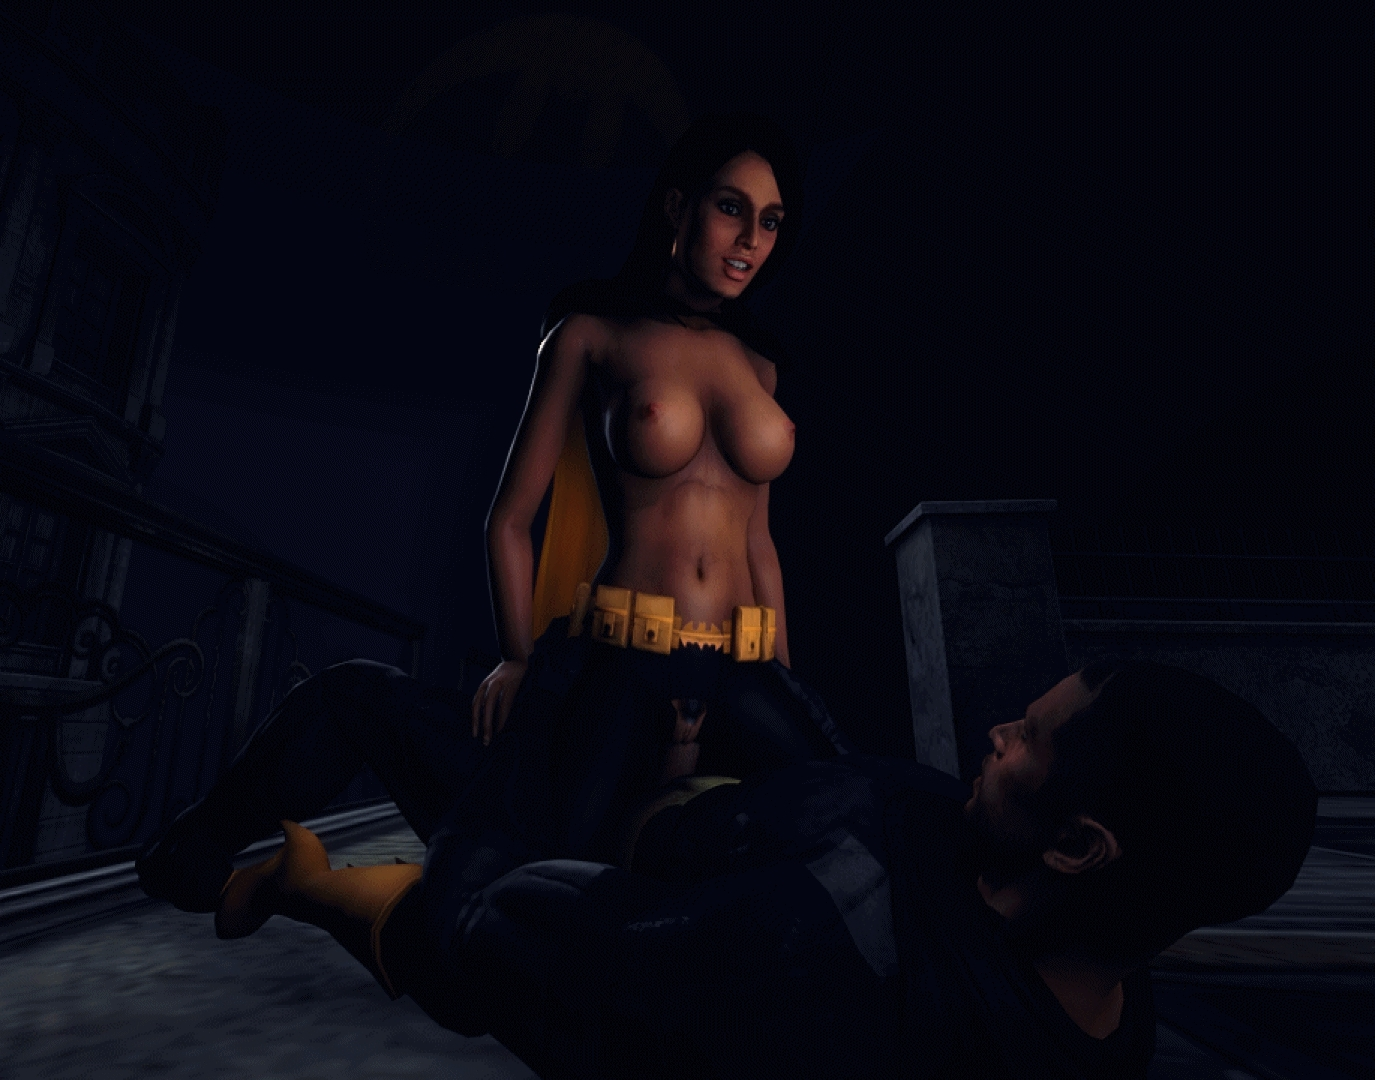 Mass effect ash porn exposed gallery